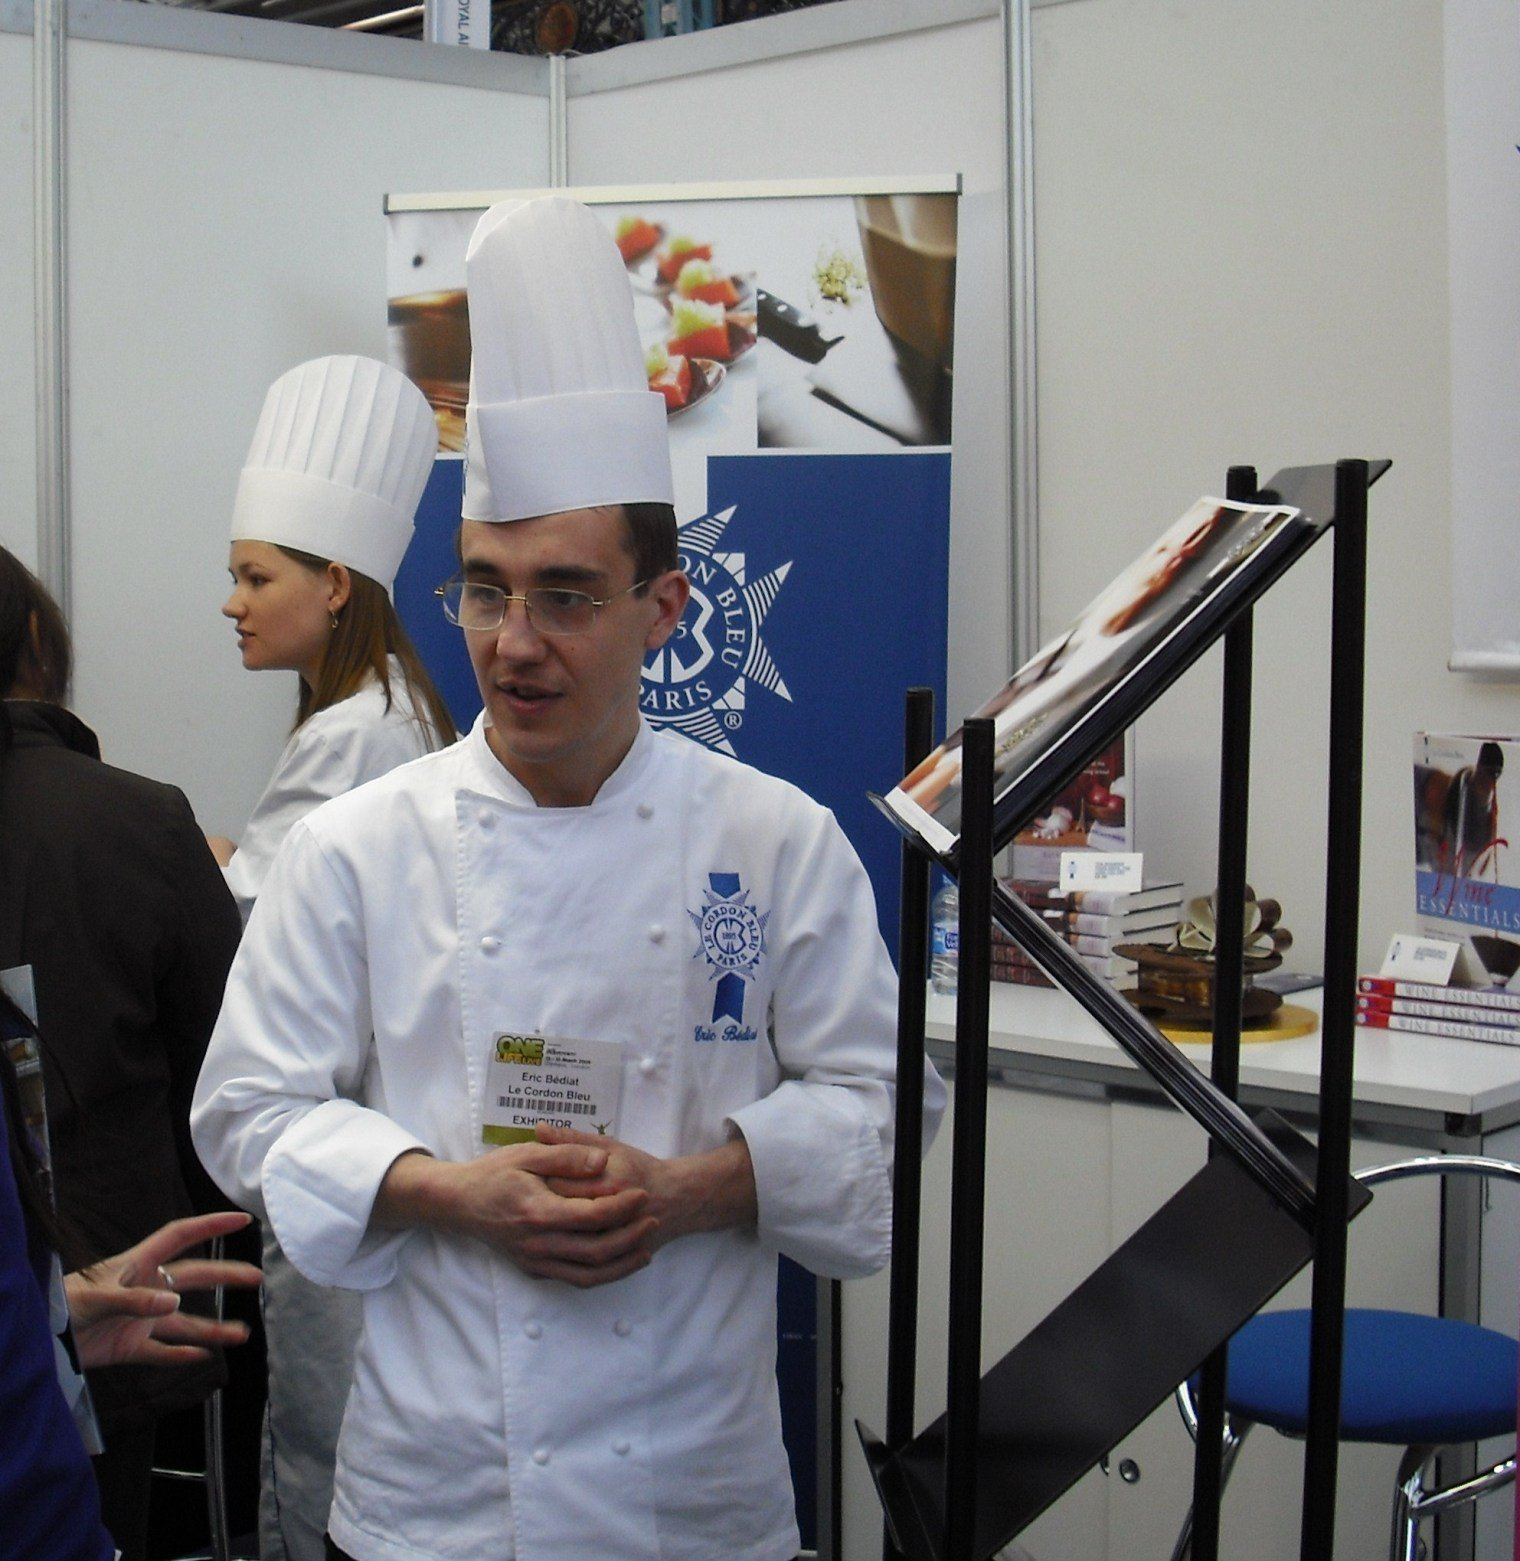 Chef Eric Bediat at the One Life Live exhibition, representing Le Cordon Bleu London